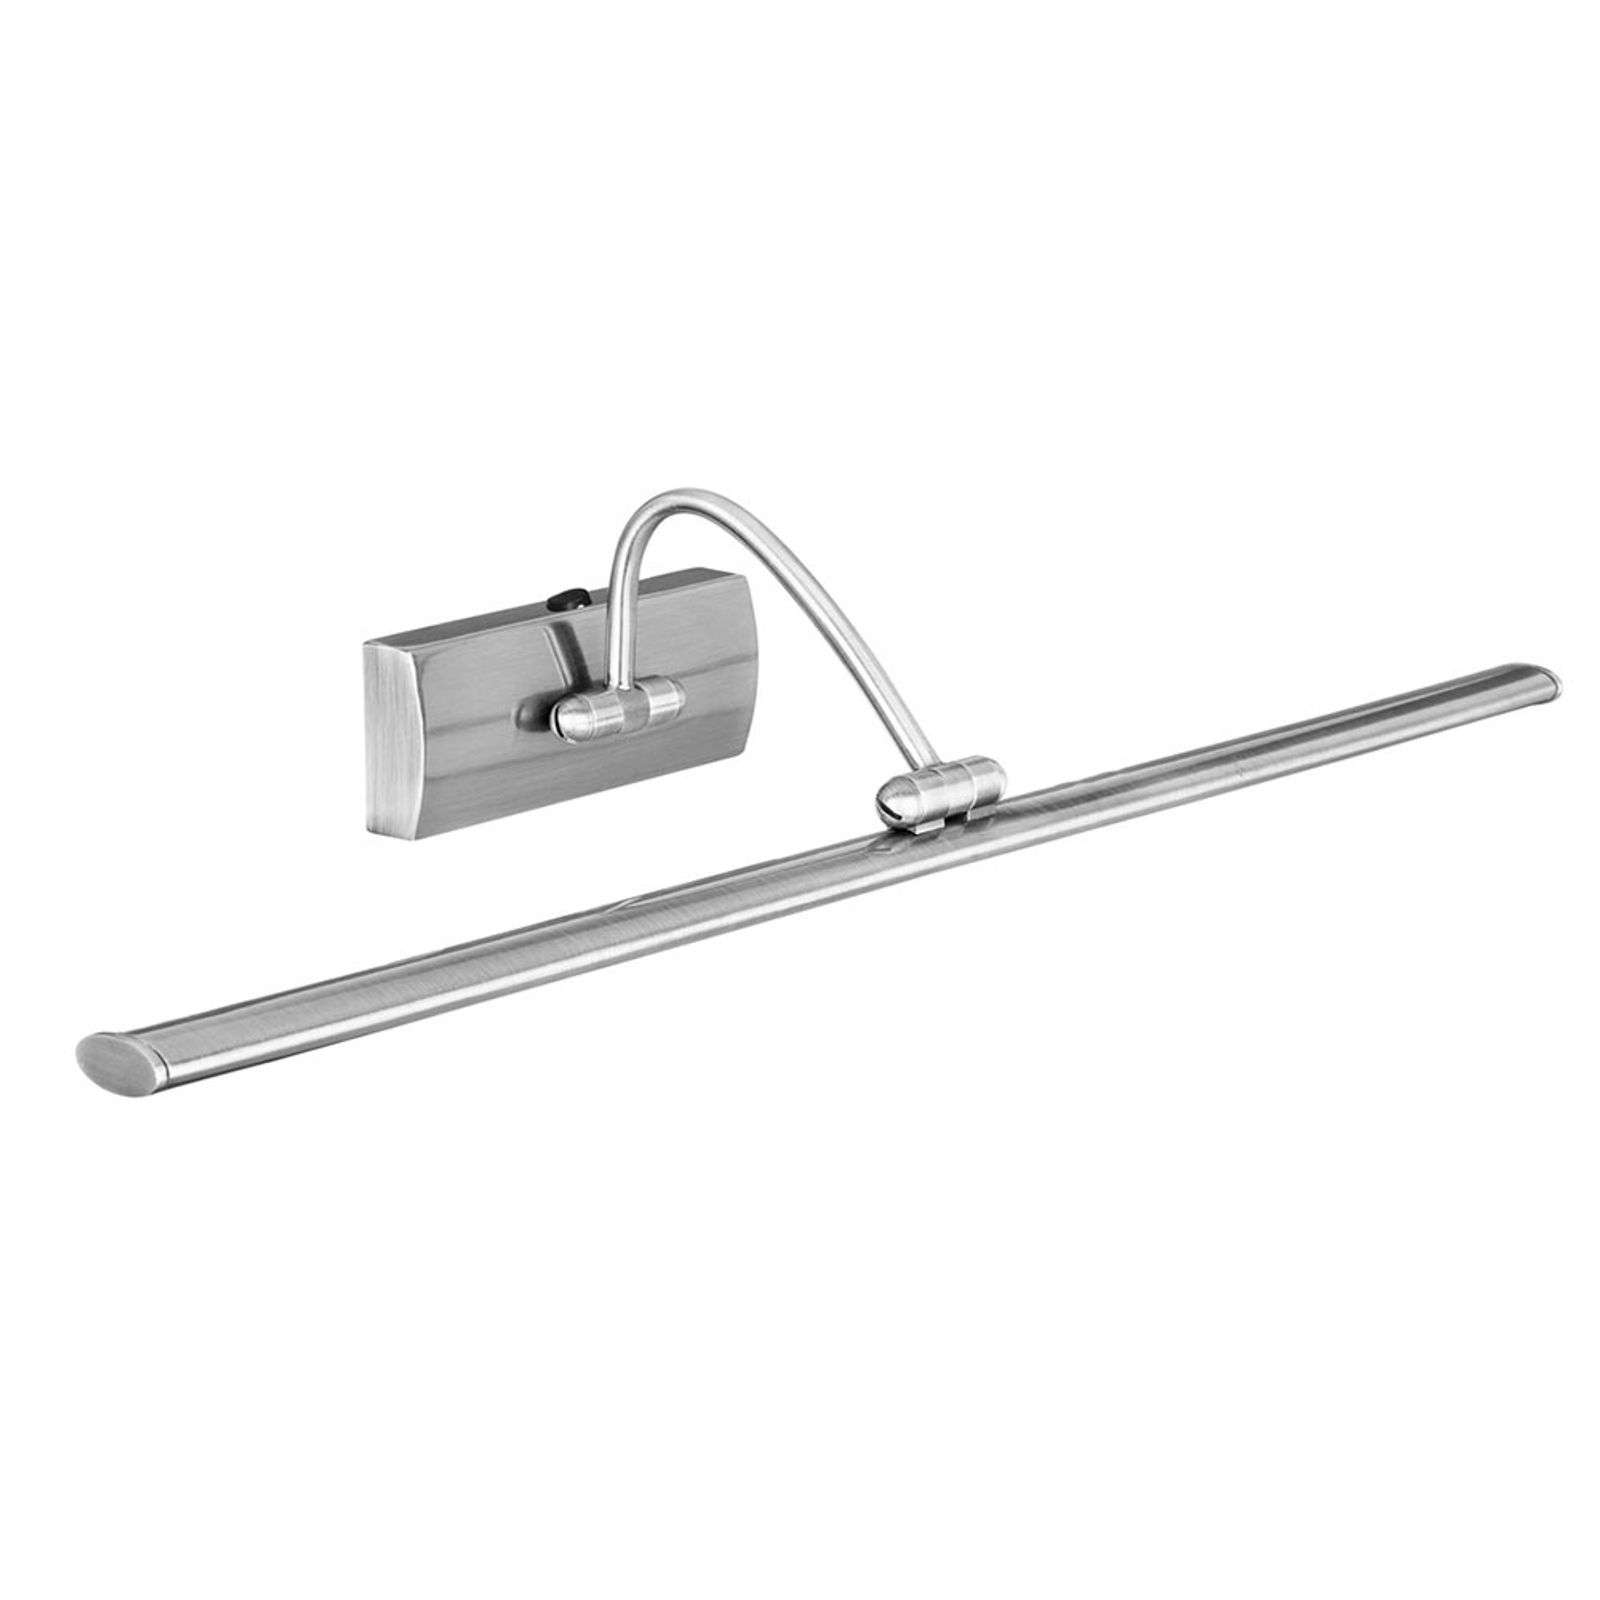 Applique LED à tableau Head, finition nickel